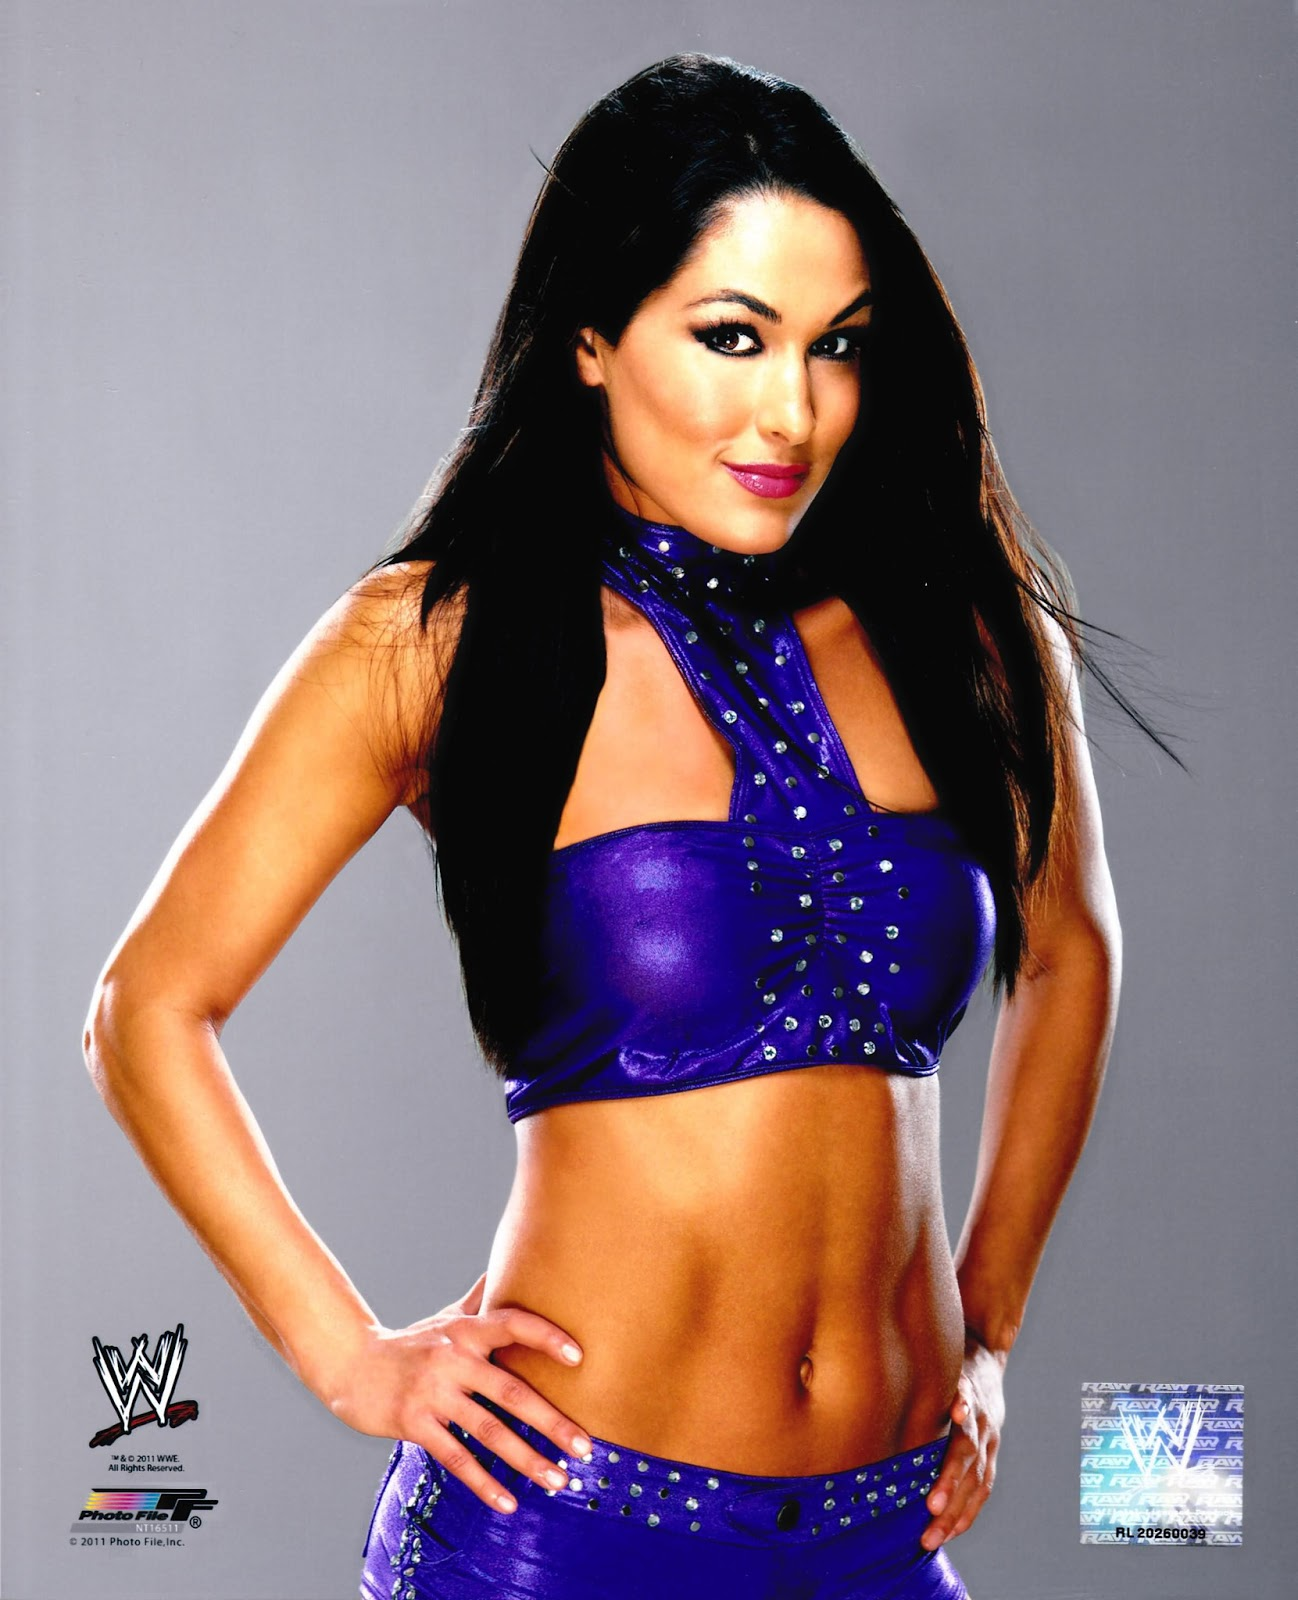 Wwe wrestling raw smackdown the divas nikkie bella - Diva nikki bella ...